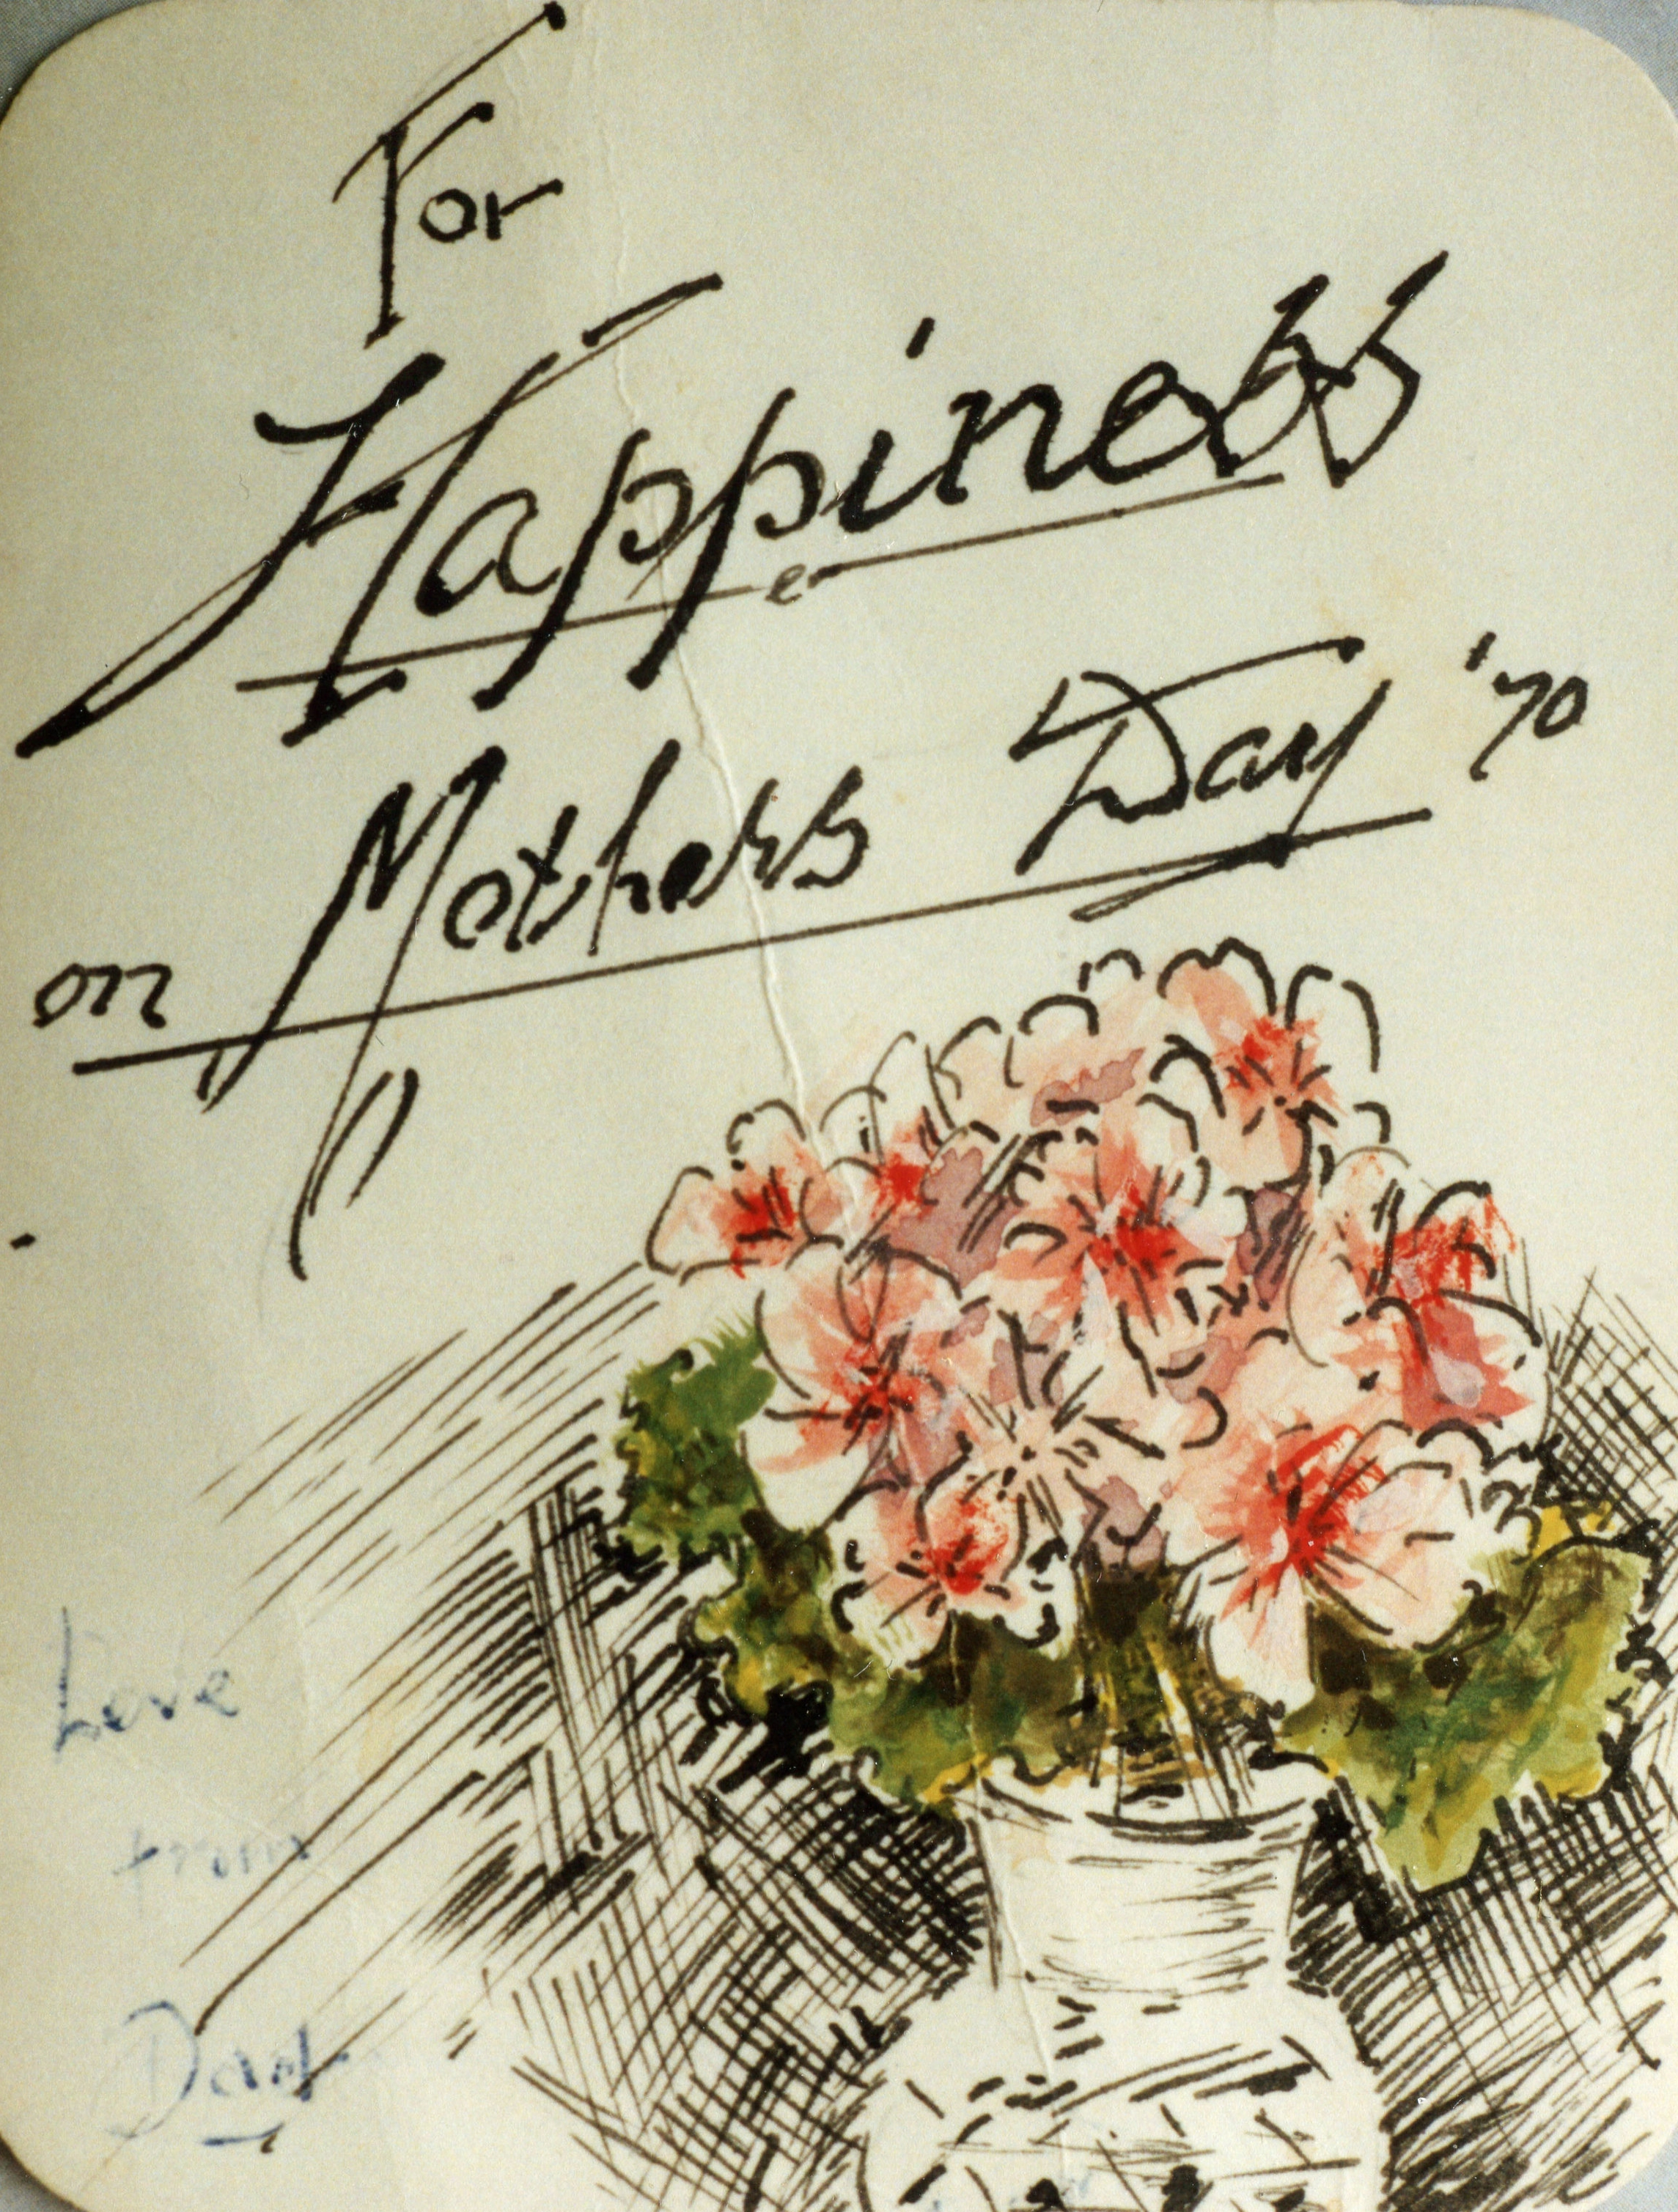 Card drawn by Reg for May, Mother's Day 1970